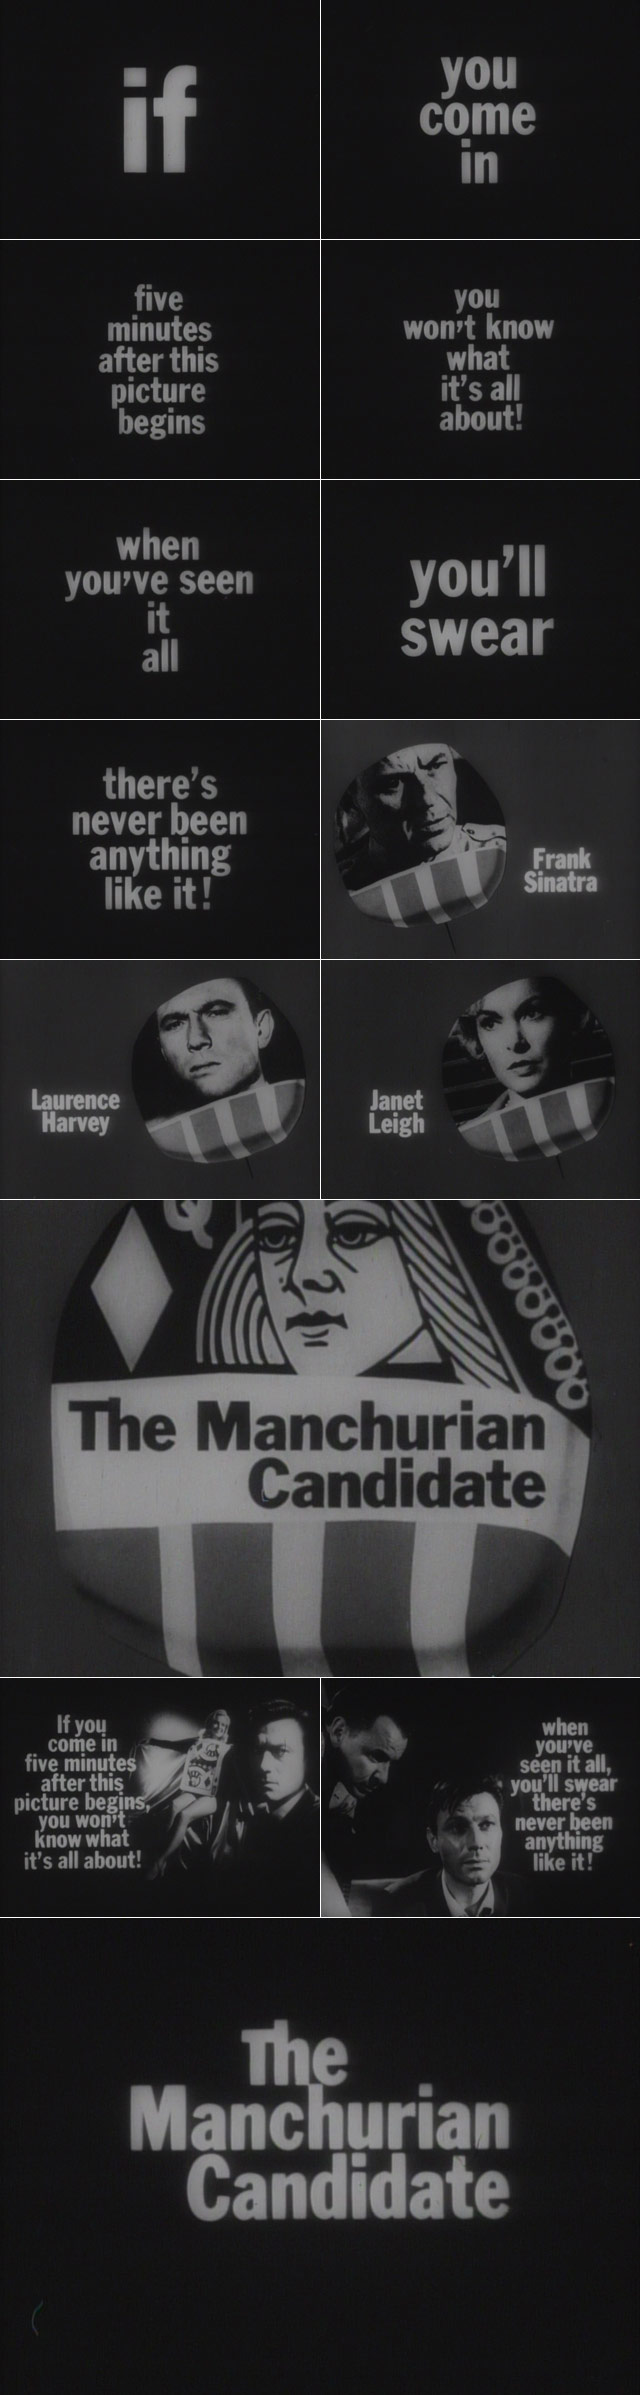 The Manchurian Candidate (1962) trailer typography